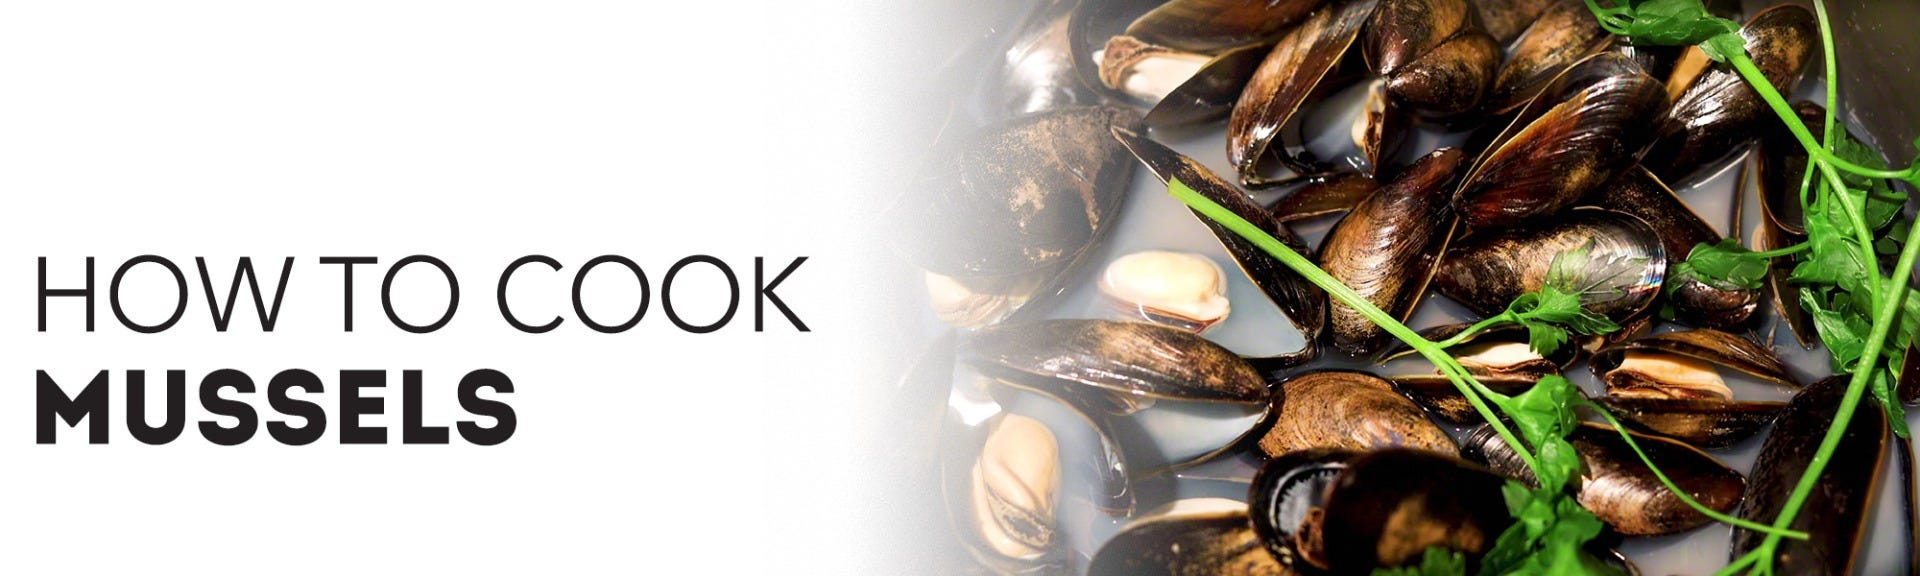 How to cook mussels